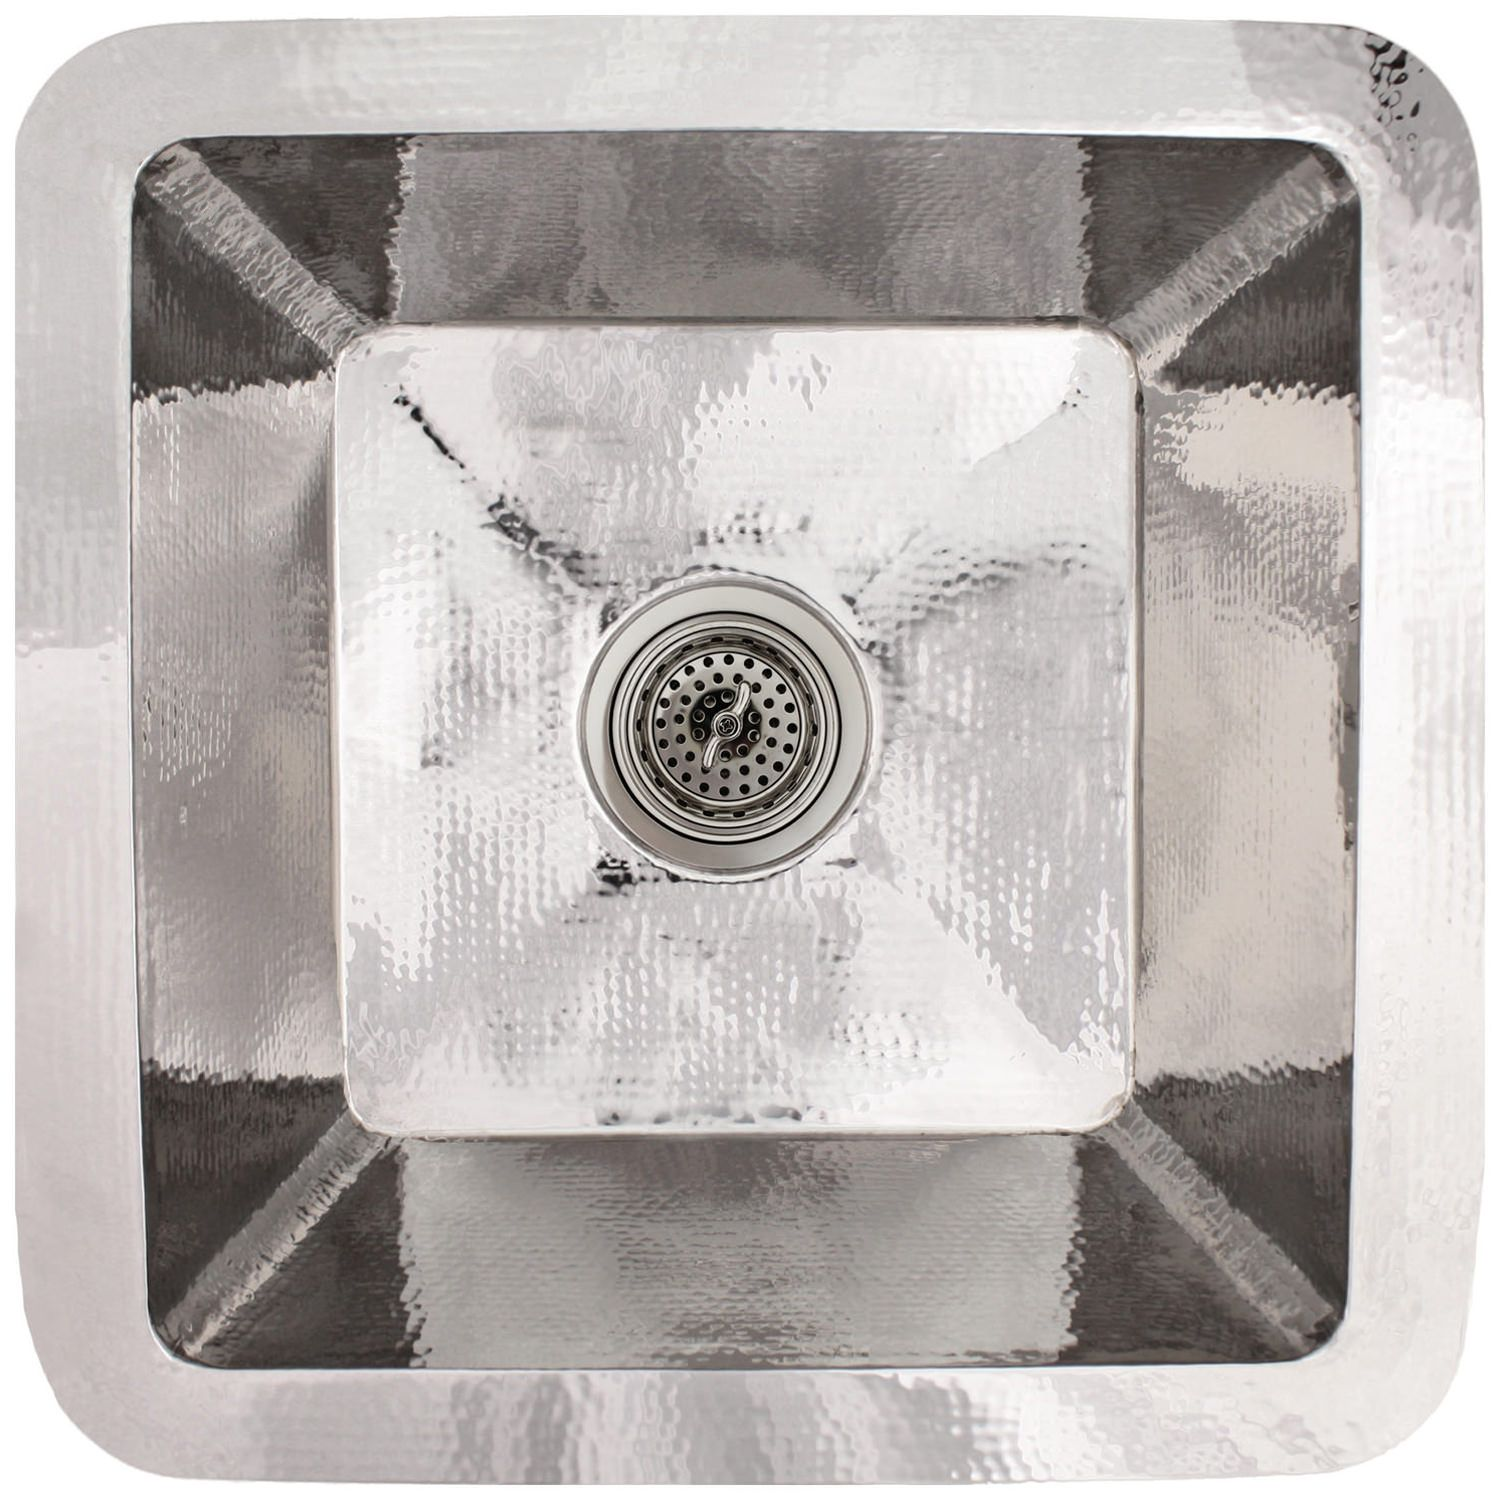 "Linkasink Kitchen Sinks - Linkasink C008-PS Large Square Stainless Steel Prep Sink - 3.5"" drain - Polished"